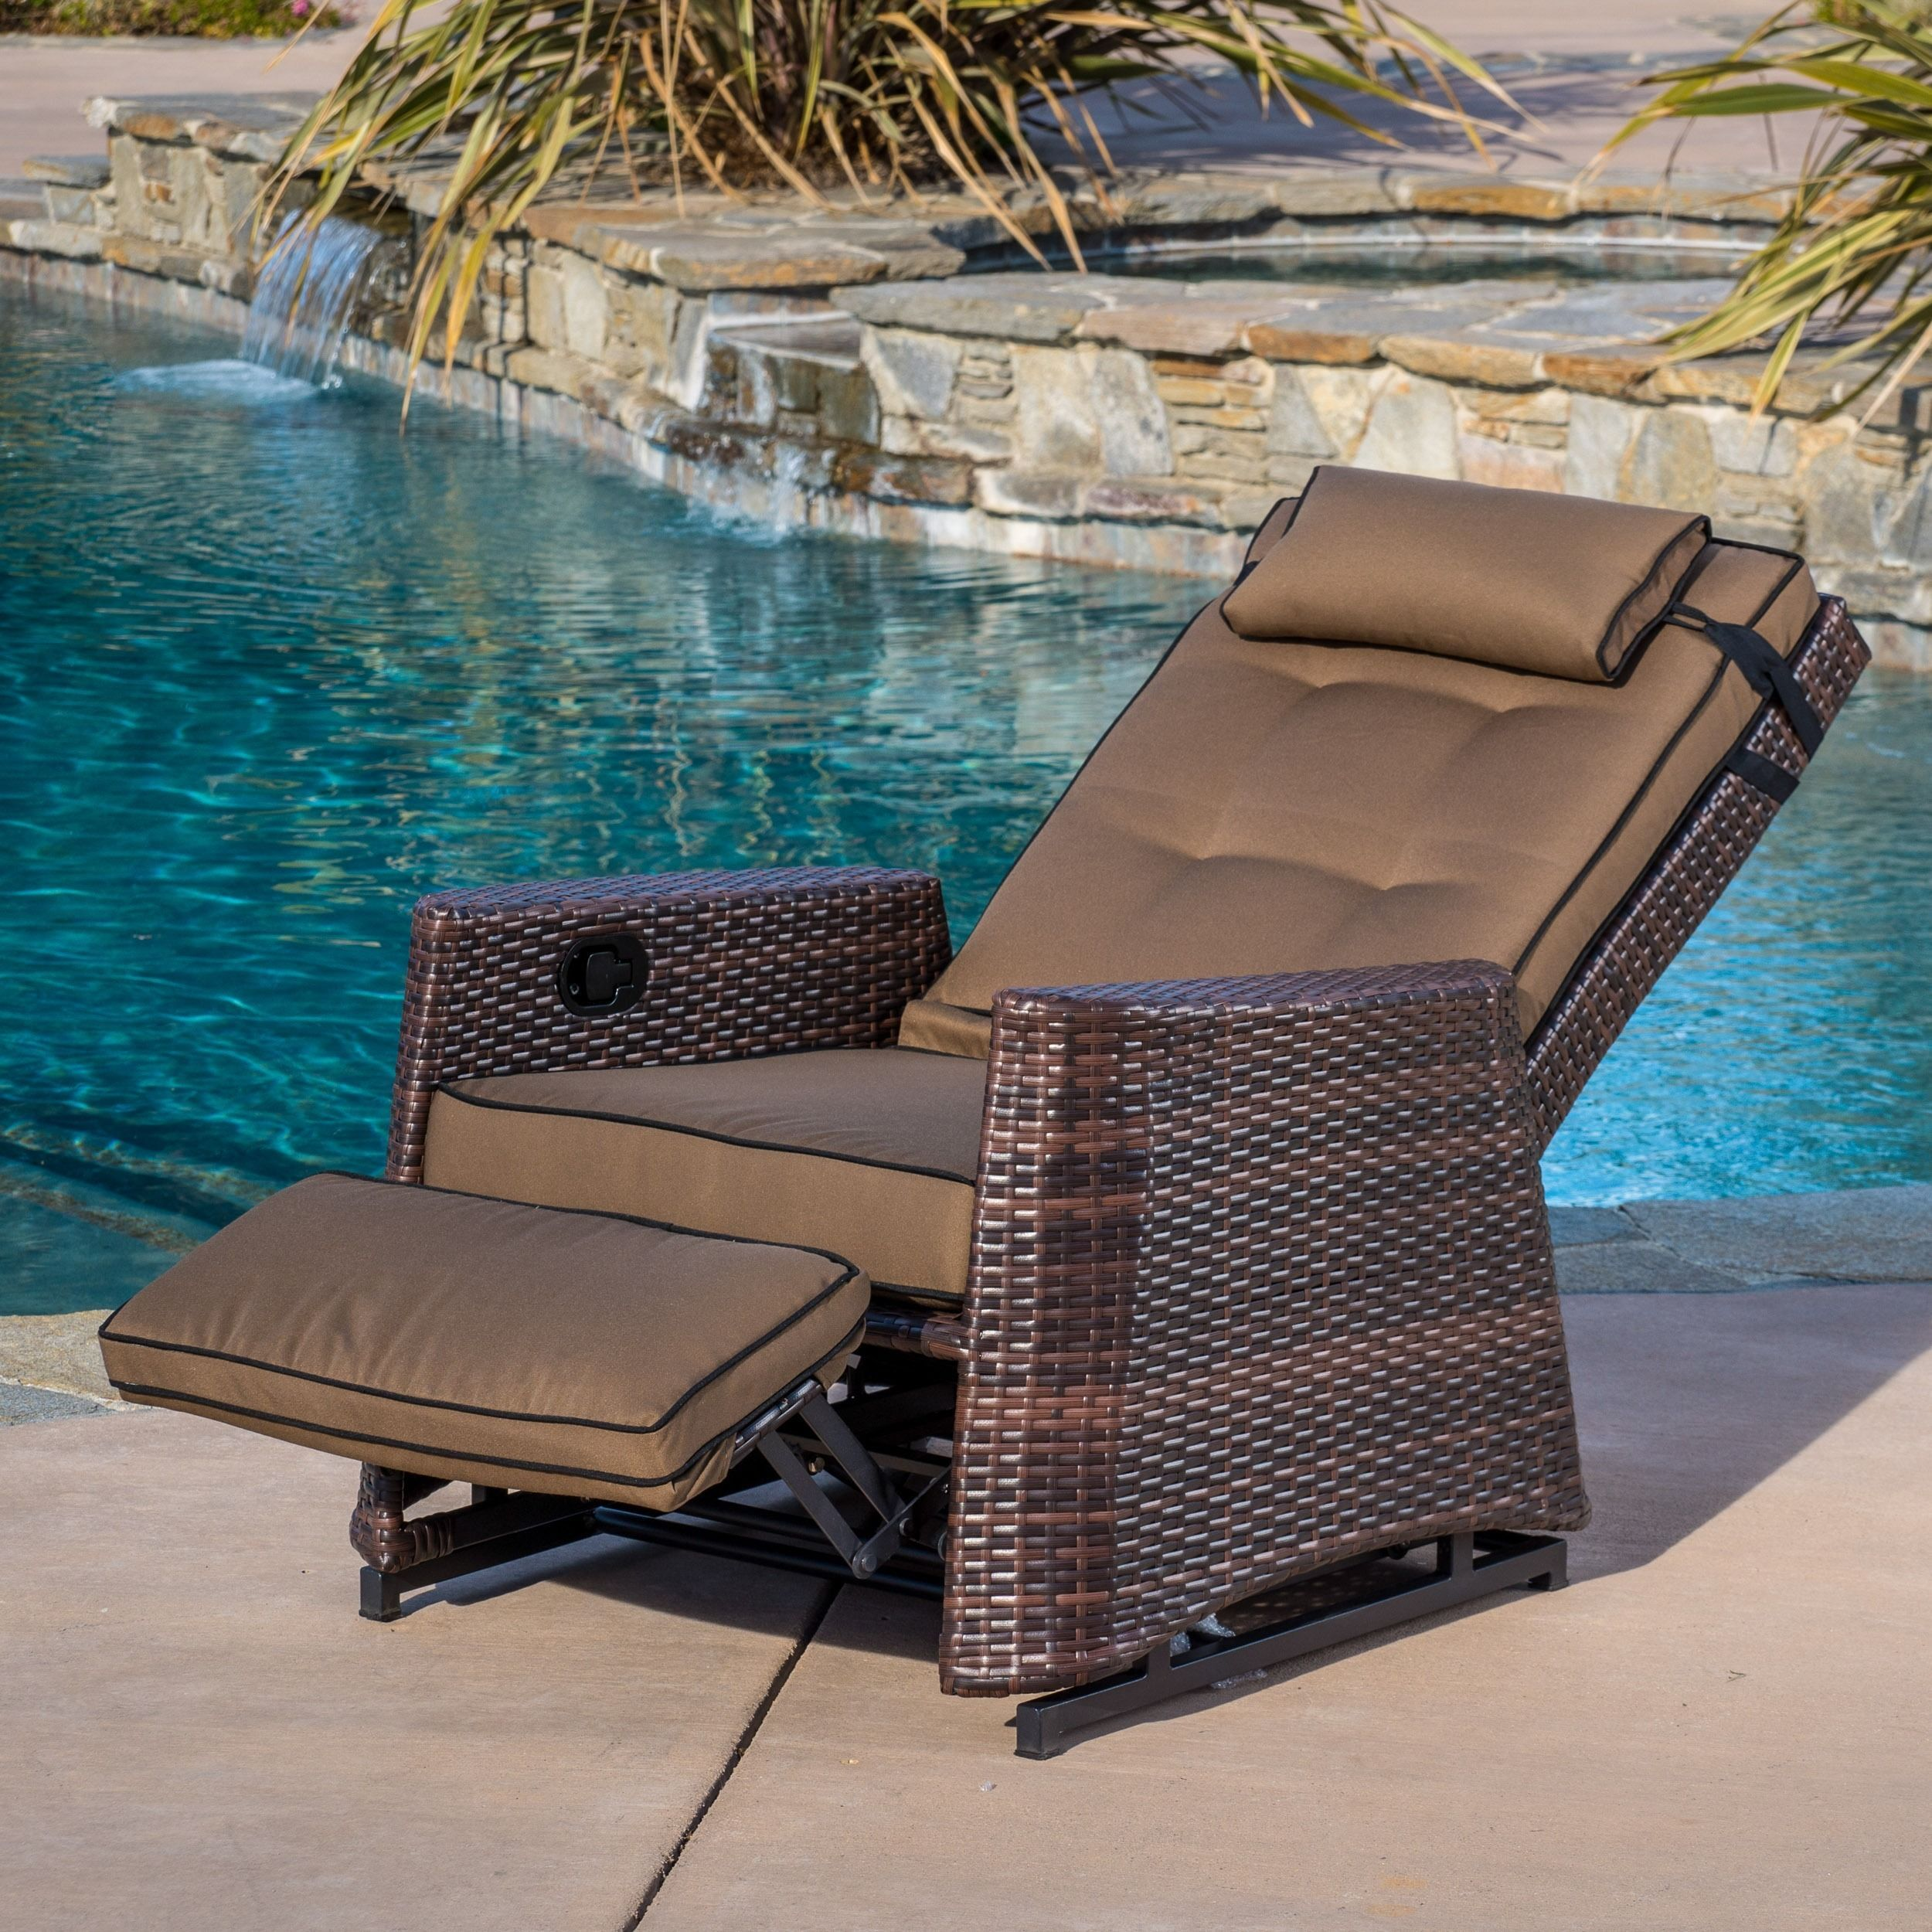 wicker recliner chair video game chairs walmart brown outdoor rocking by christopher knight home sunbrella size single patio furniture aluminum